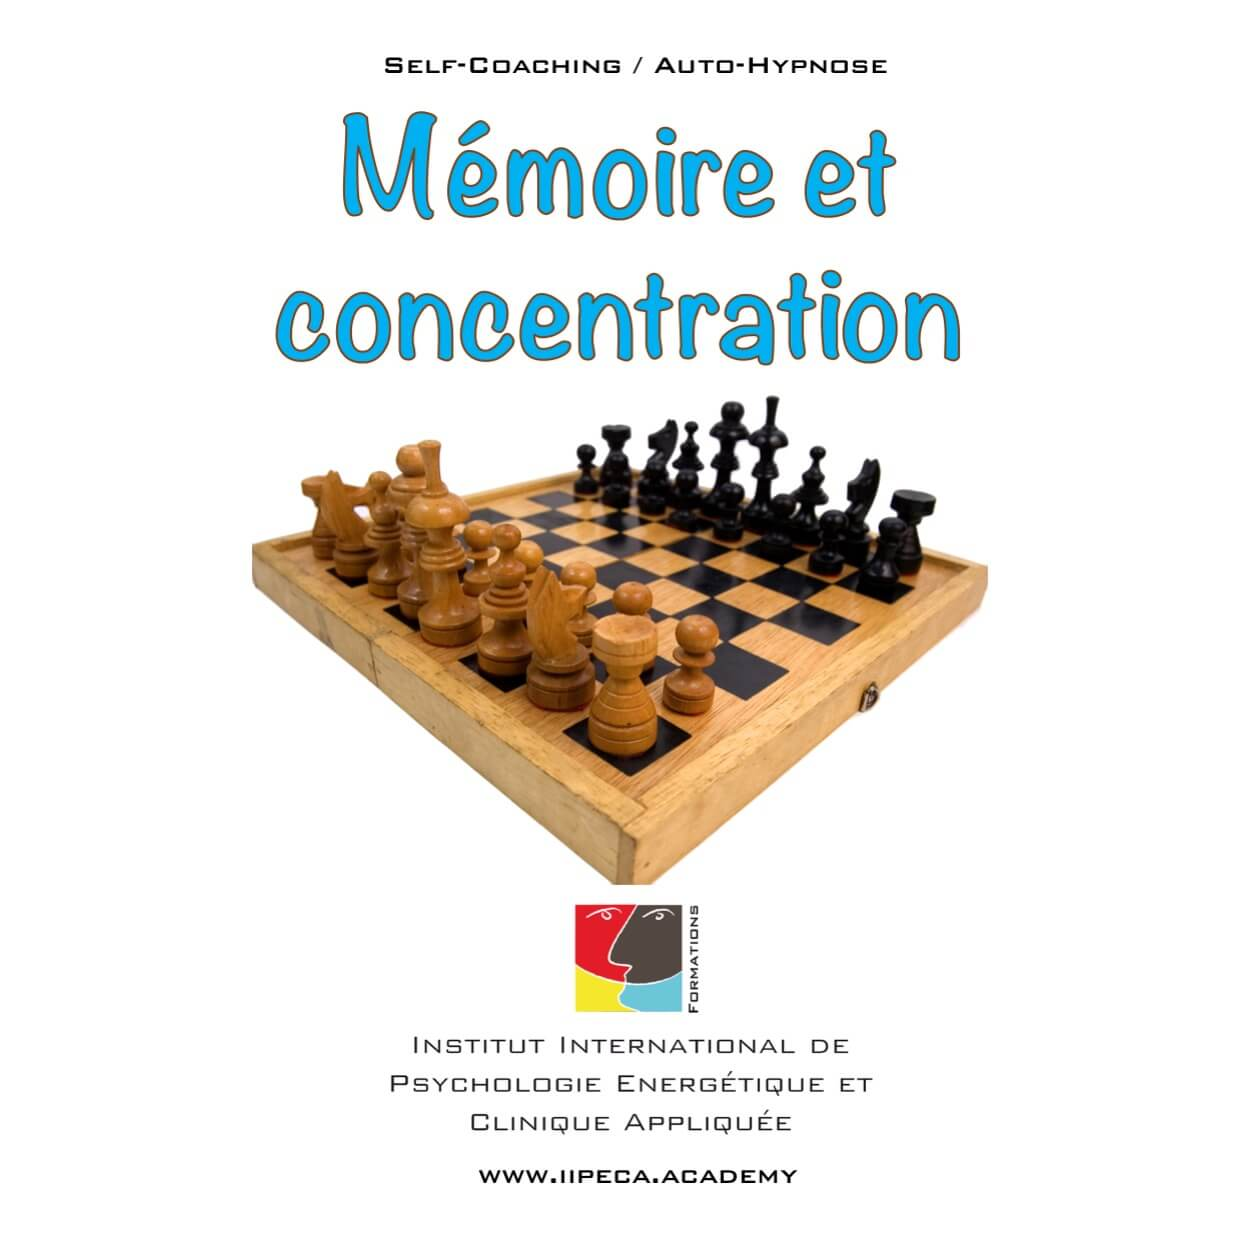 memoire concentration iipeca academy mp3 self coaching auto-hypnose